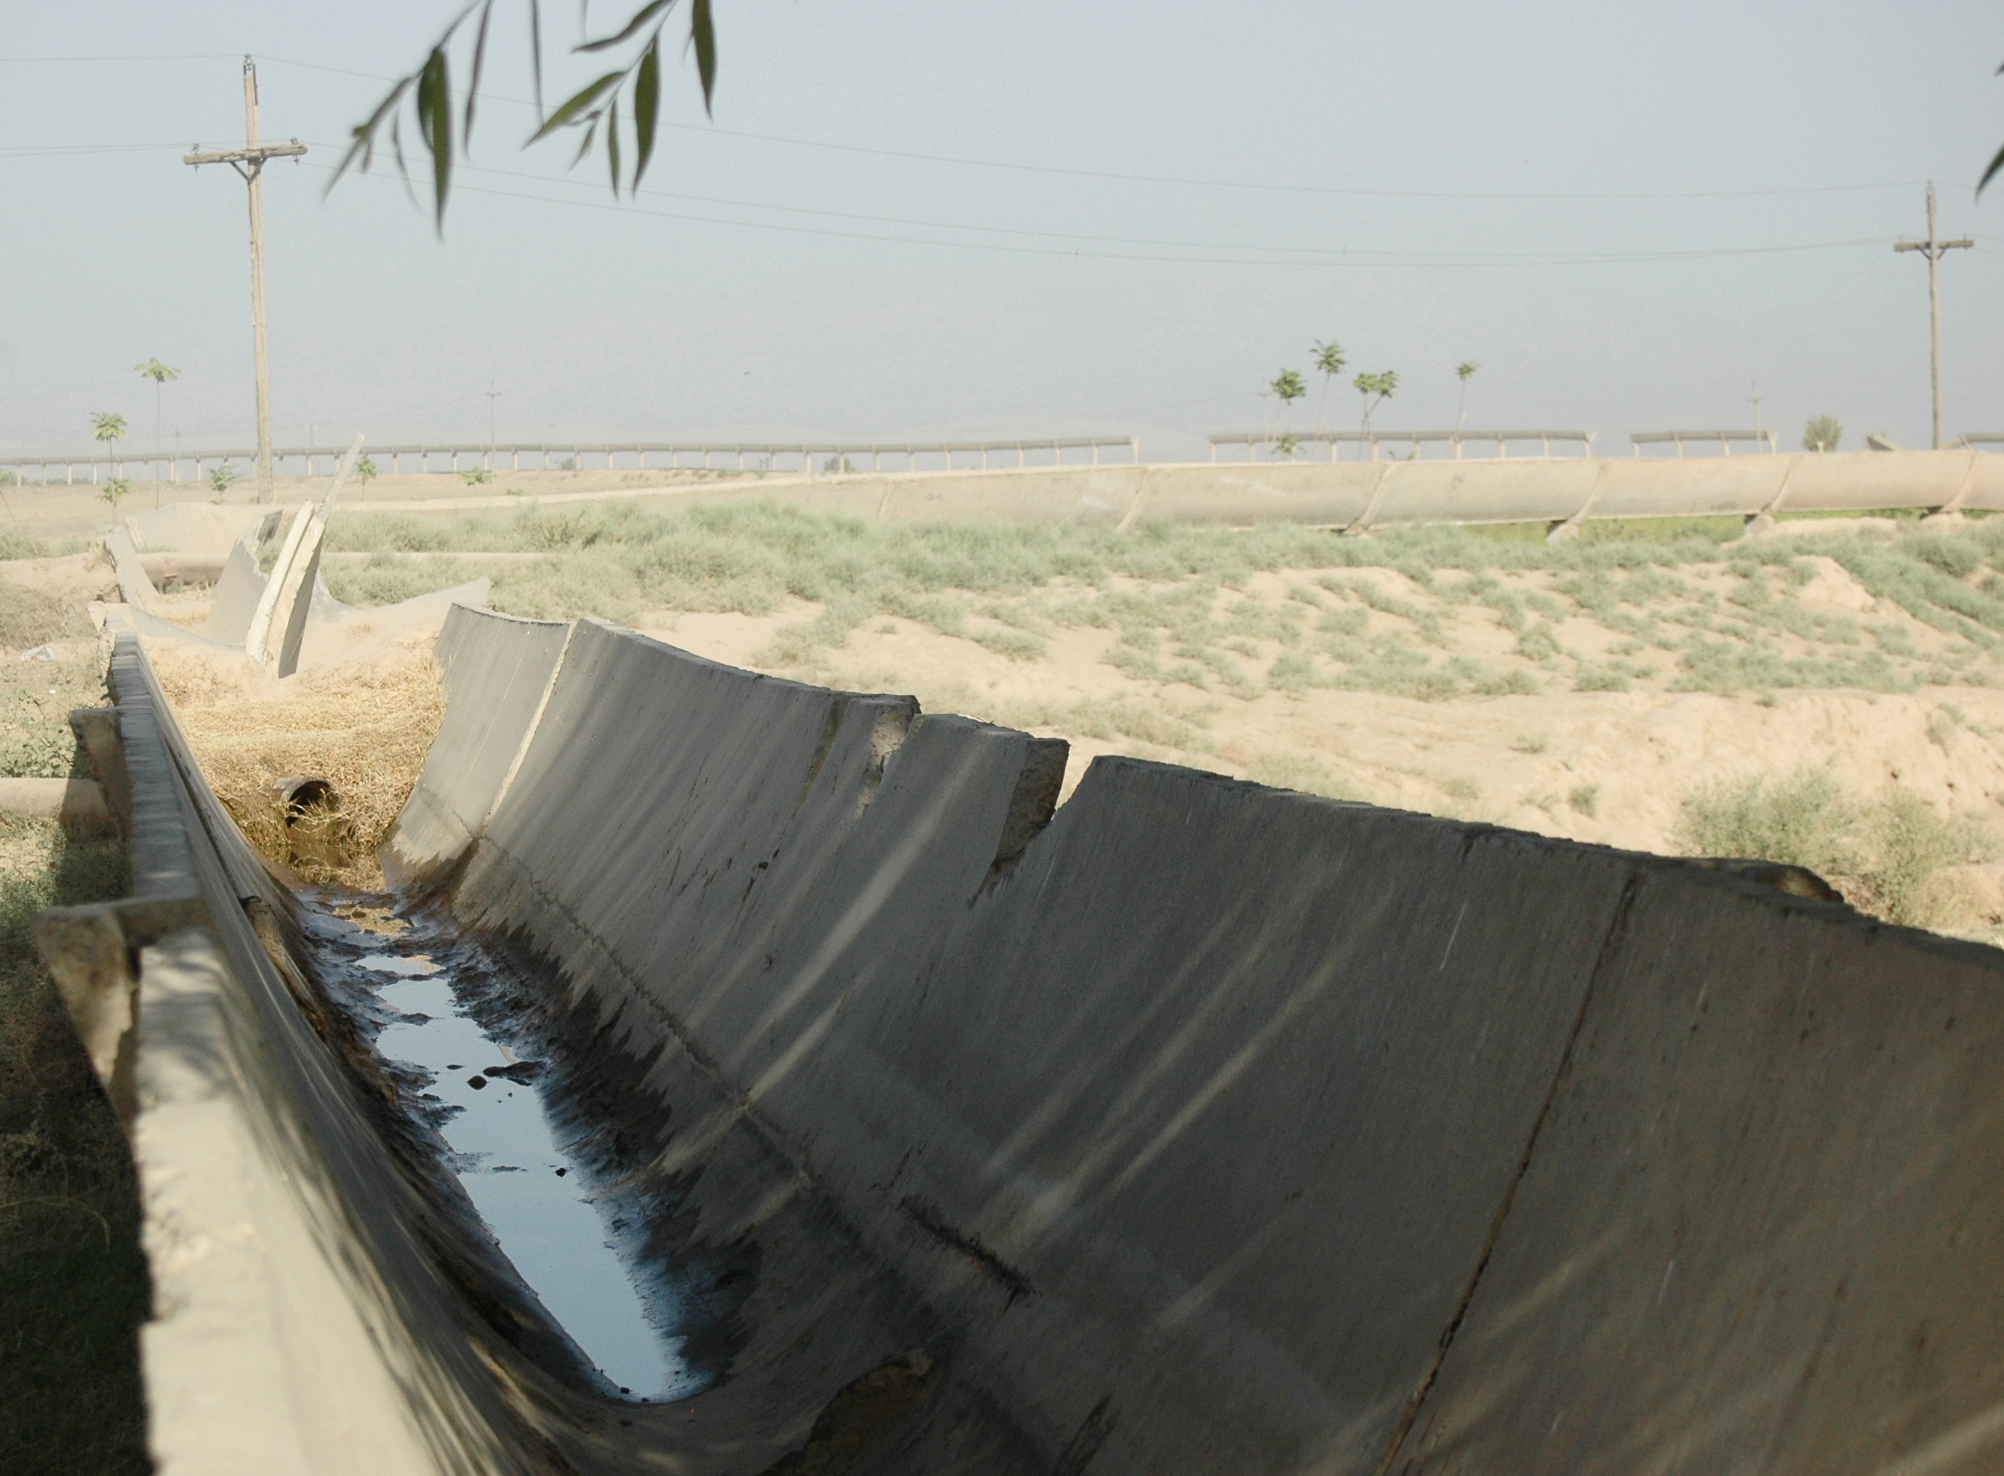 A degrading irrigation canal in southern Tajikistan, where Water User Associations (WUAs), which are composed of groups of farmers, are now responsible for maintaining canals in to support agricultural production. I study how farmers self-organize to govern these types of irrigation infrastructures under new institutions (rules and norms) that are associated with newly established WUAs in Tajikistan.